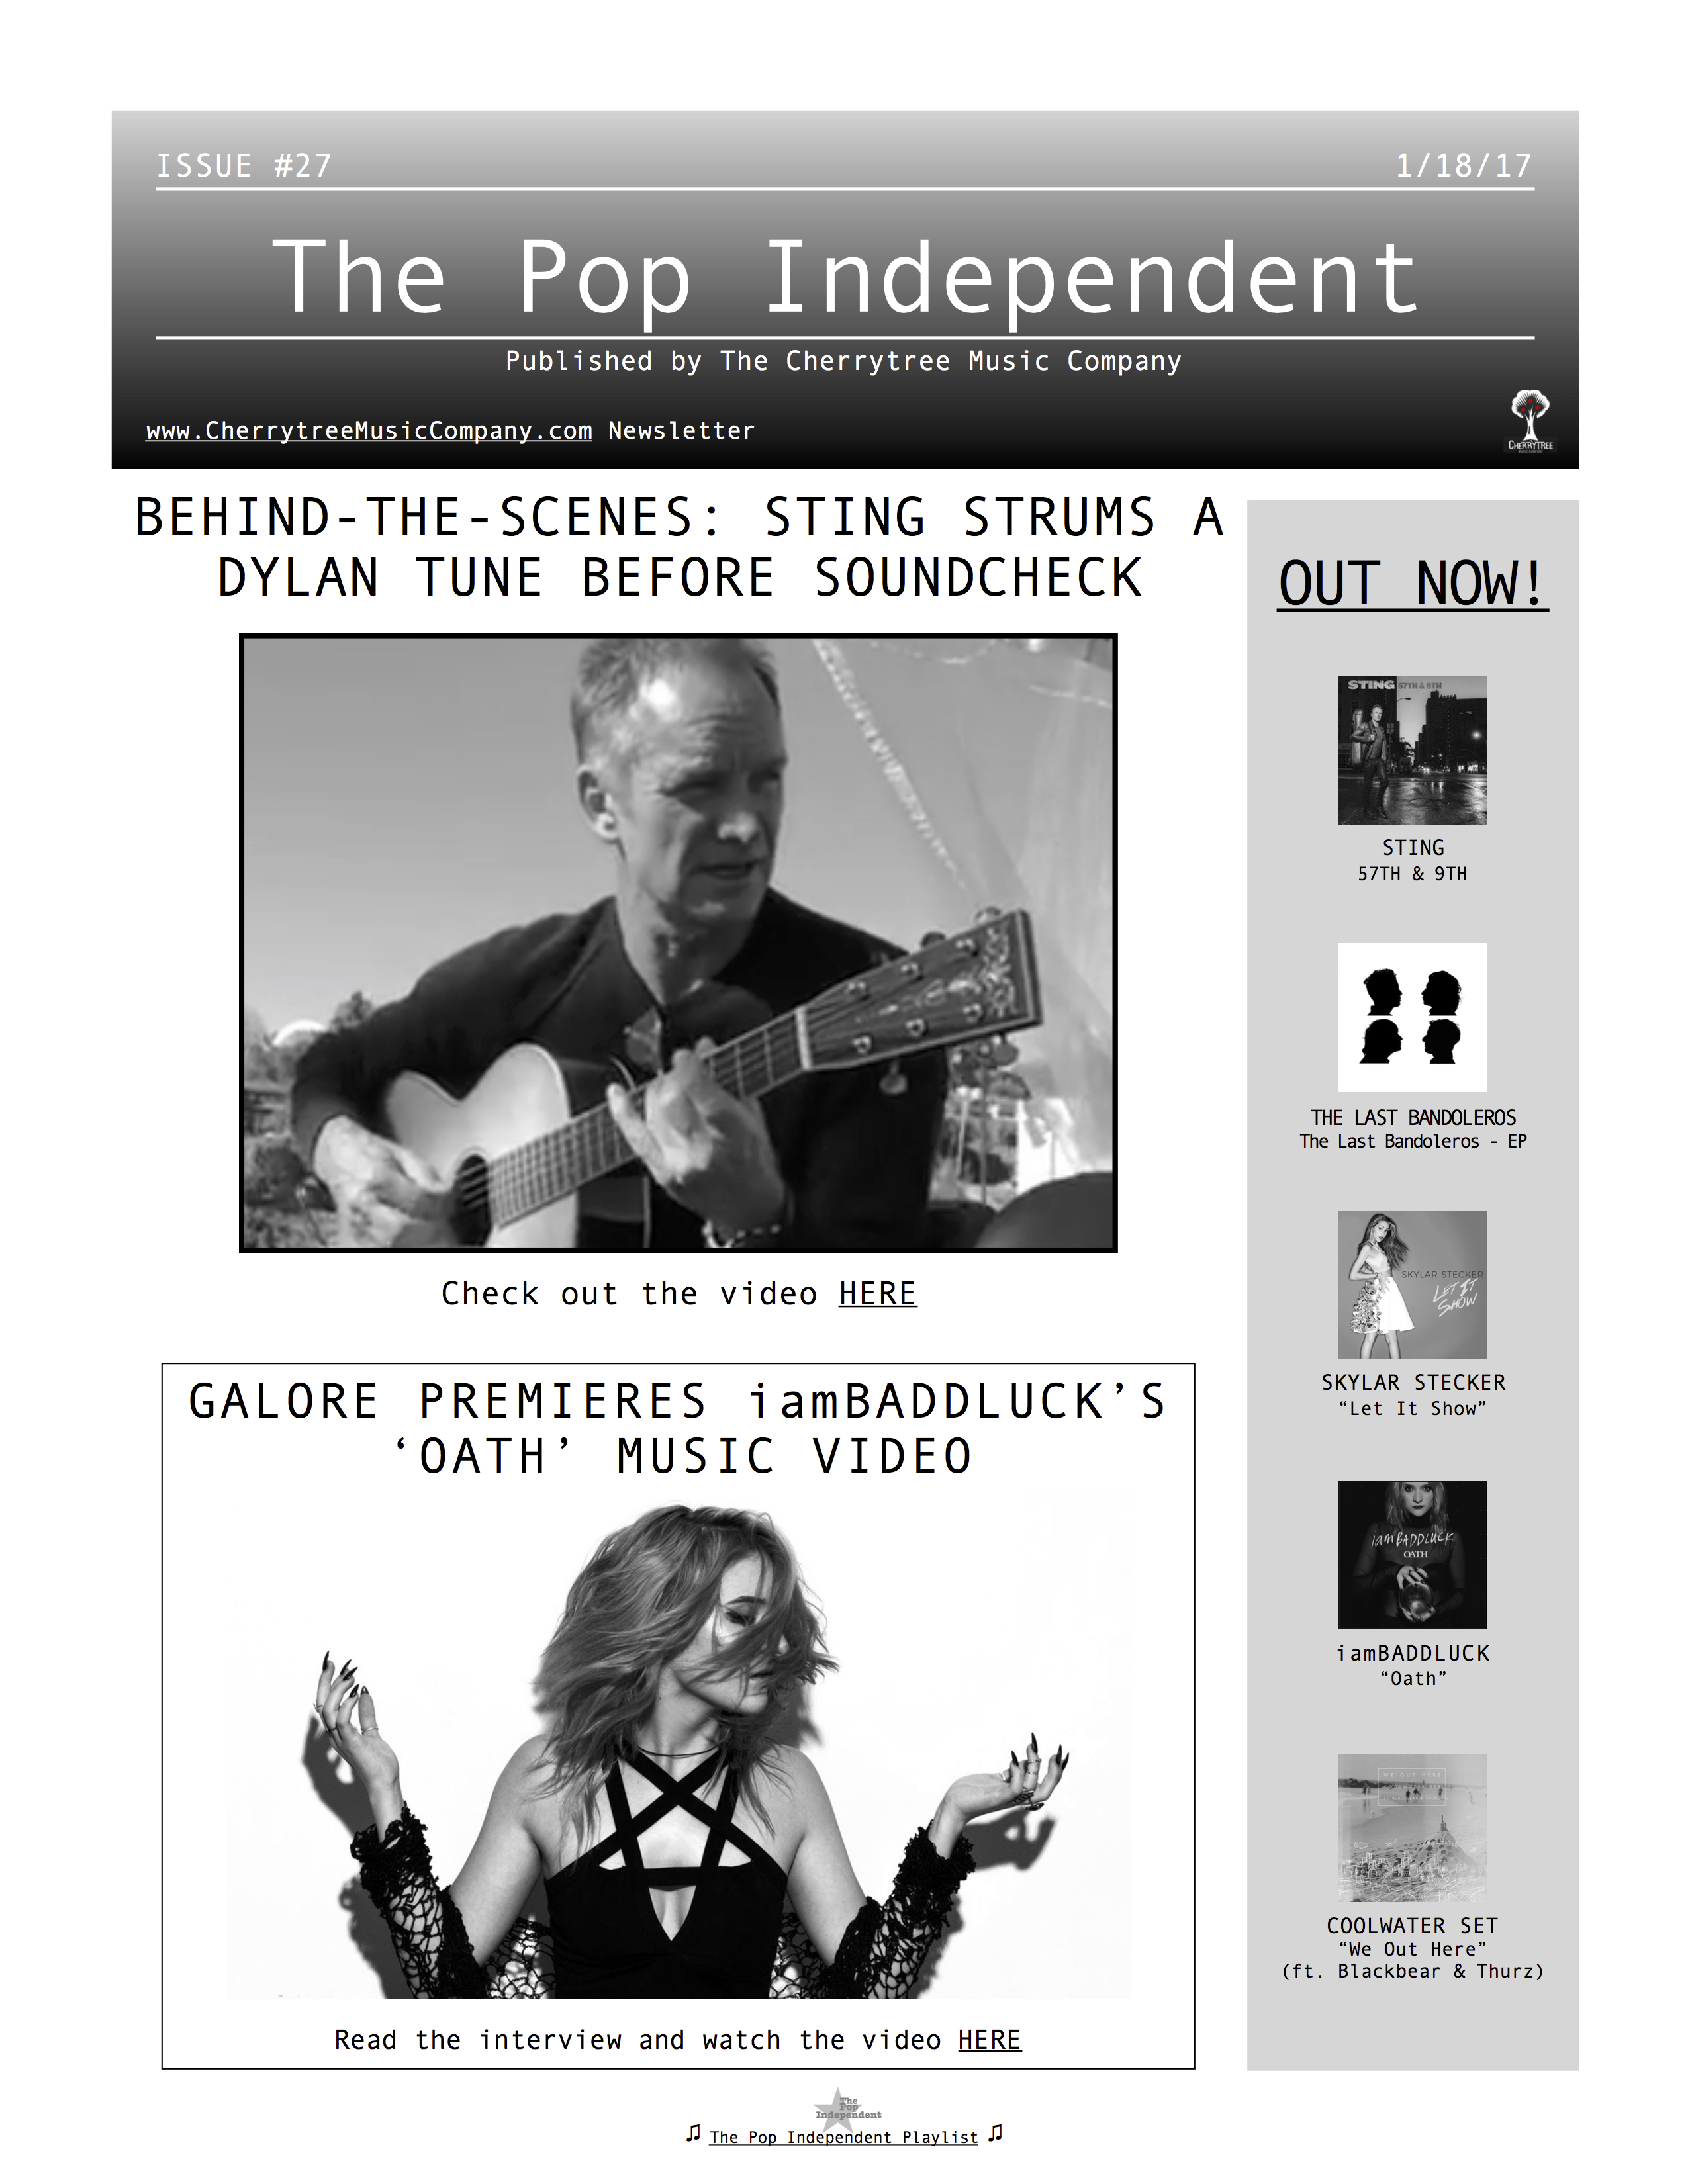 The Pop Independent, issue 27